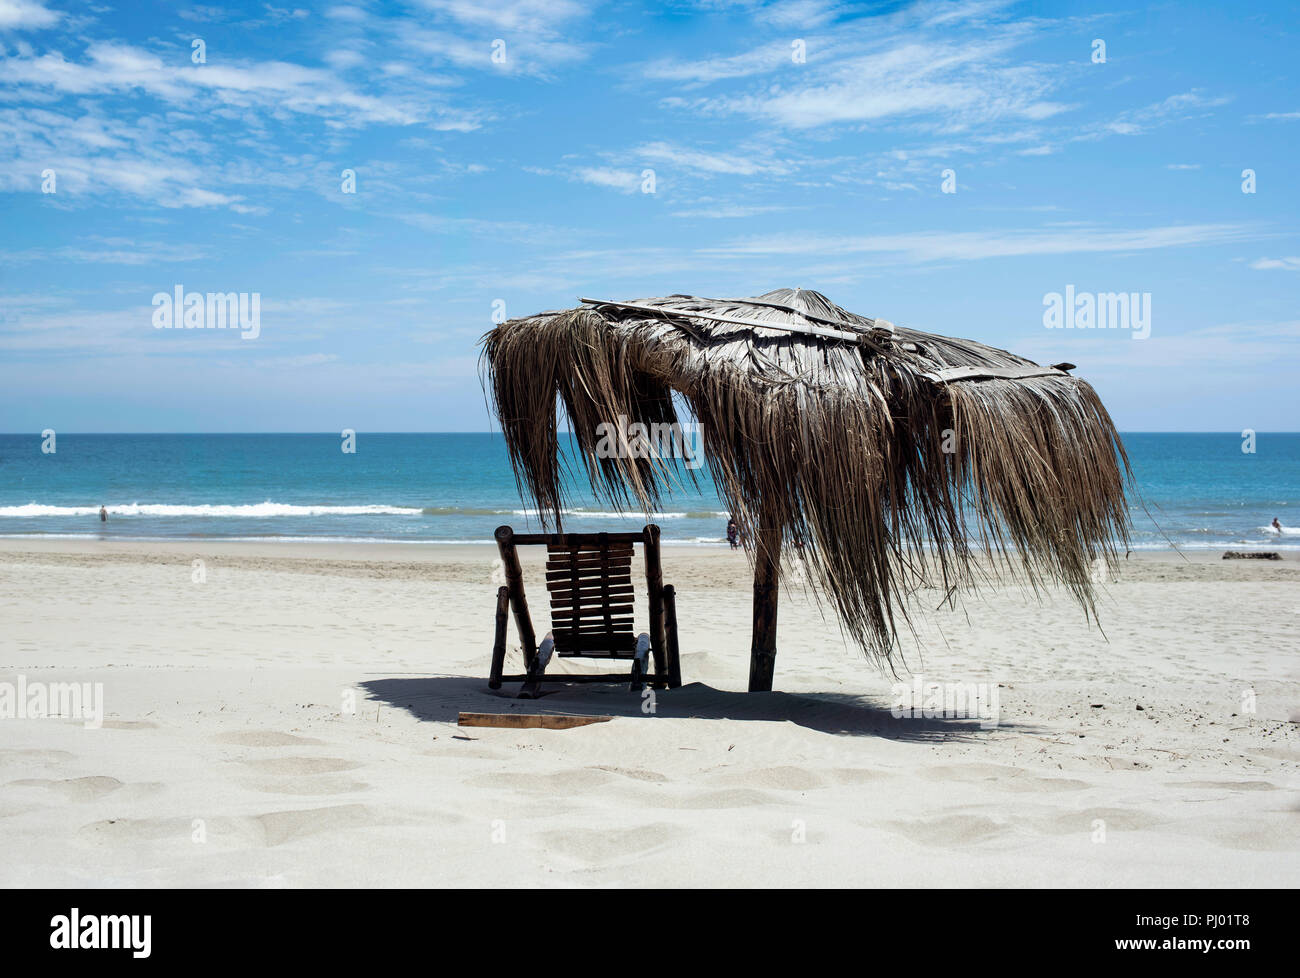 Rustic beach chair and straw umbrella with turquoise ocean view. Relaxed vibes on Vichayito beach near Mancora, Piura region, Peru. Aug 2018 - Stock Image